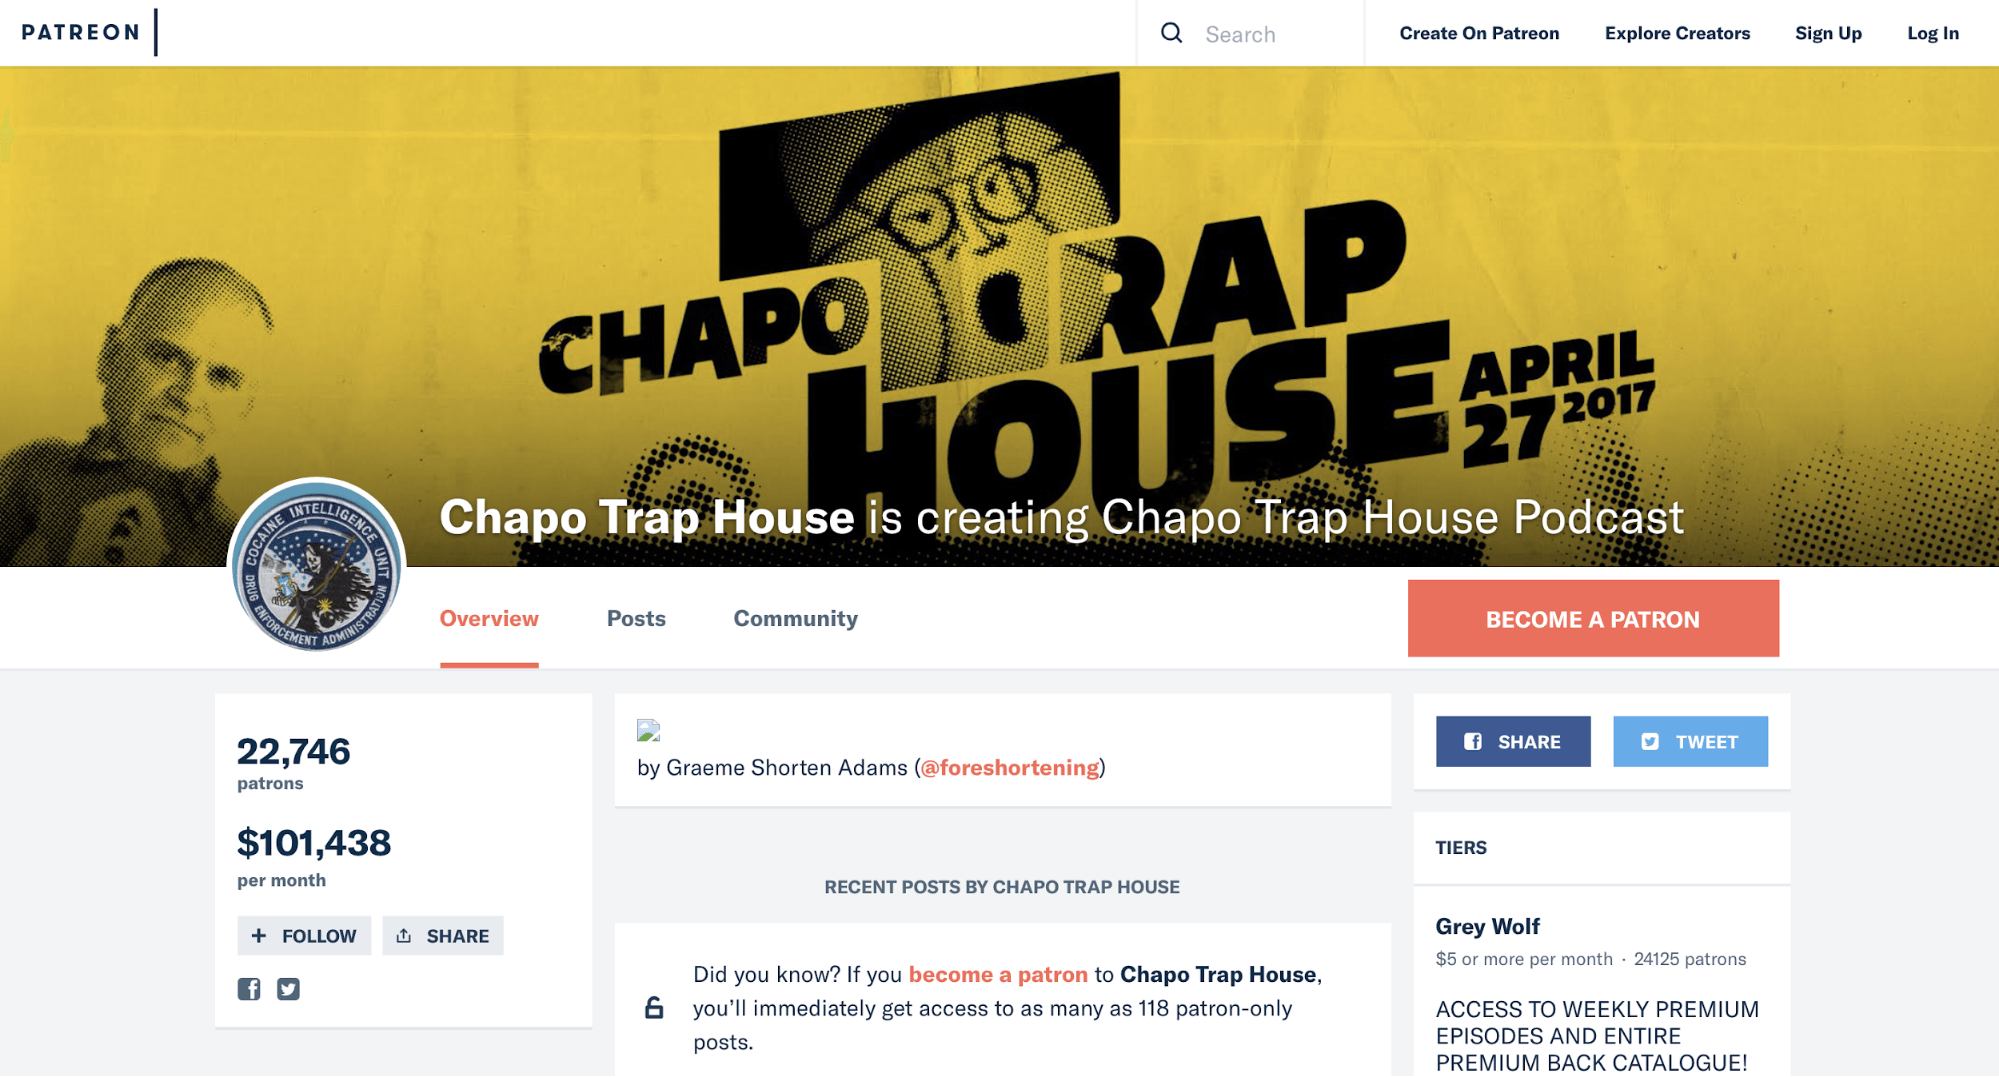 Patreon Chapo Trap House